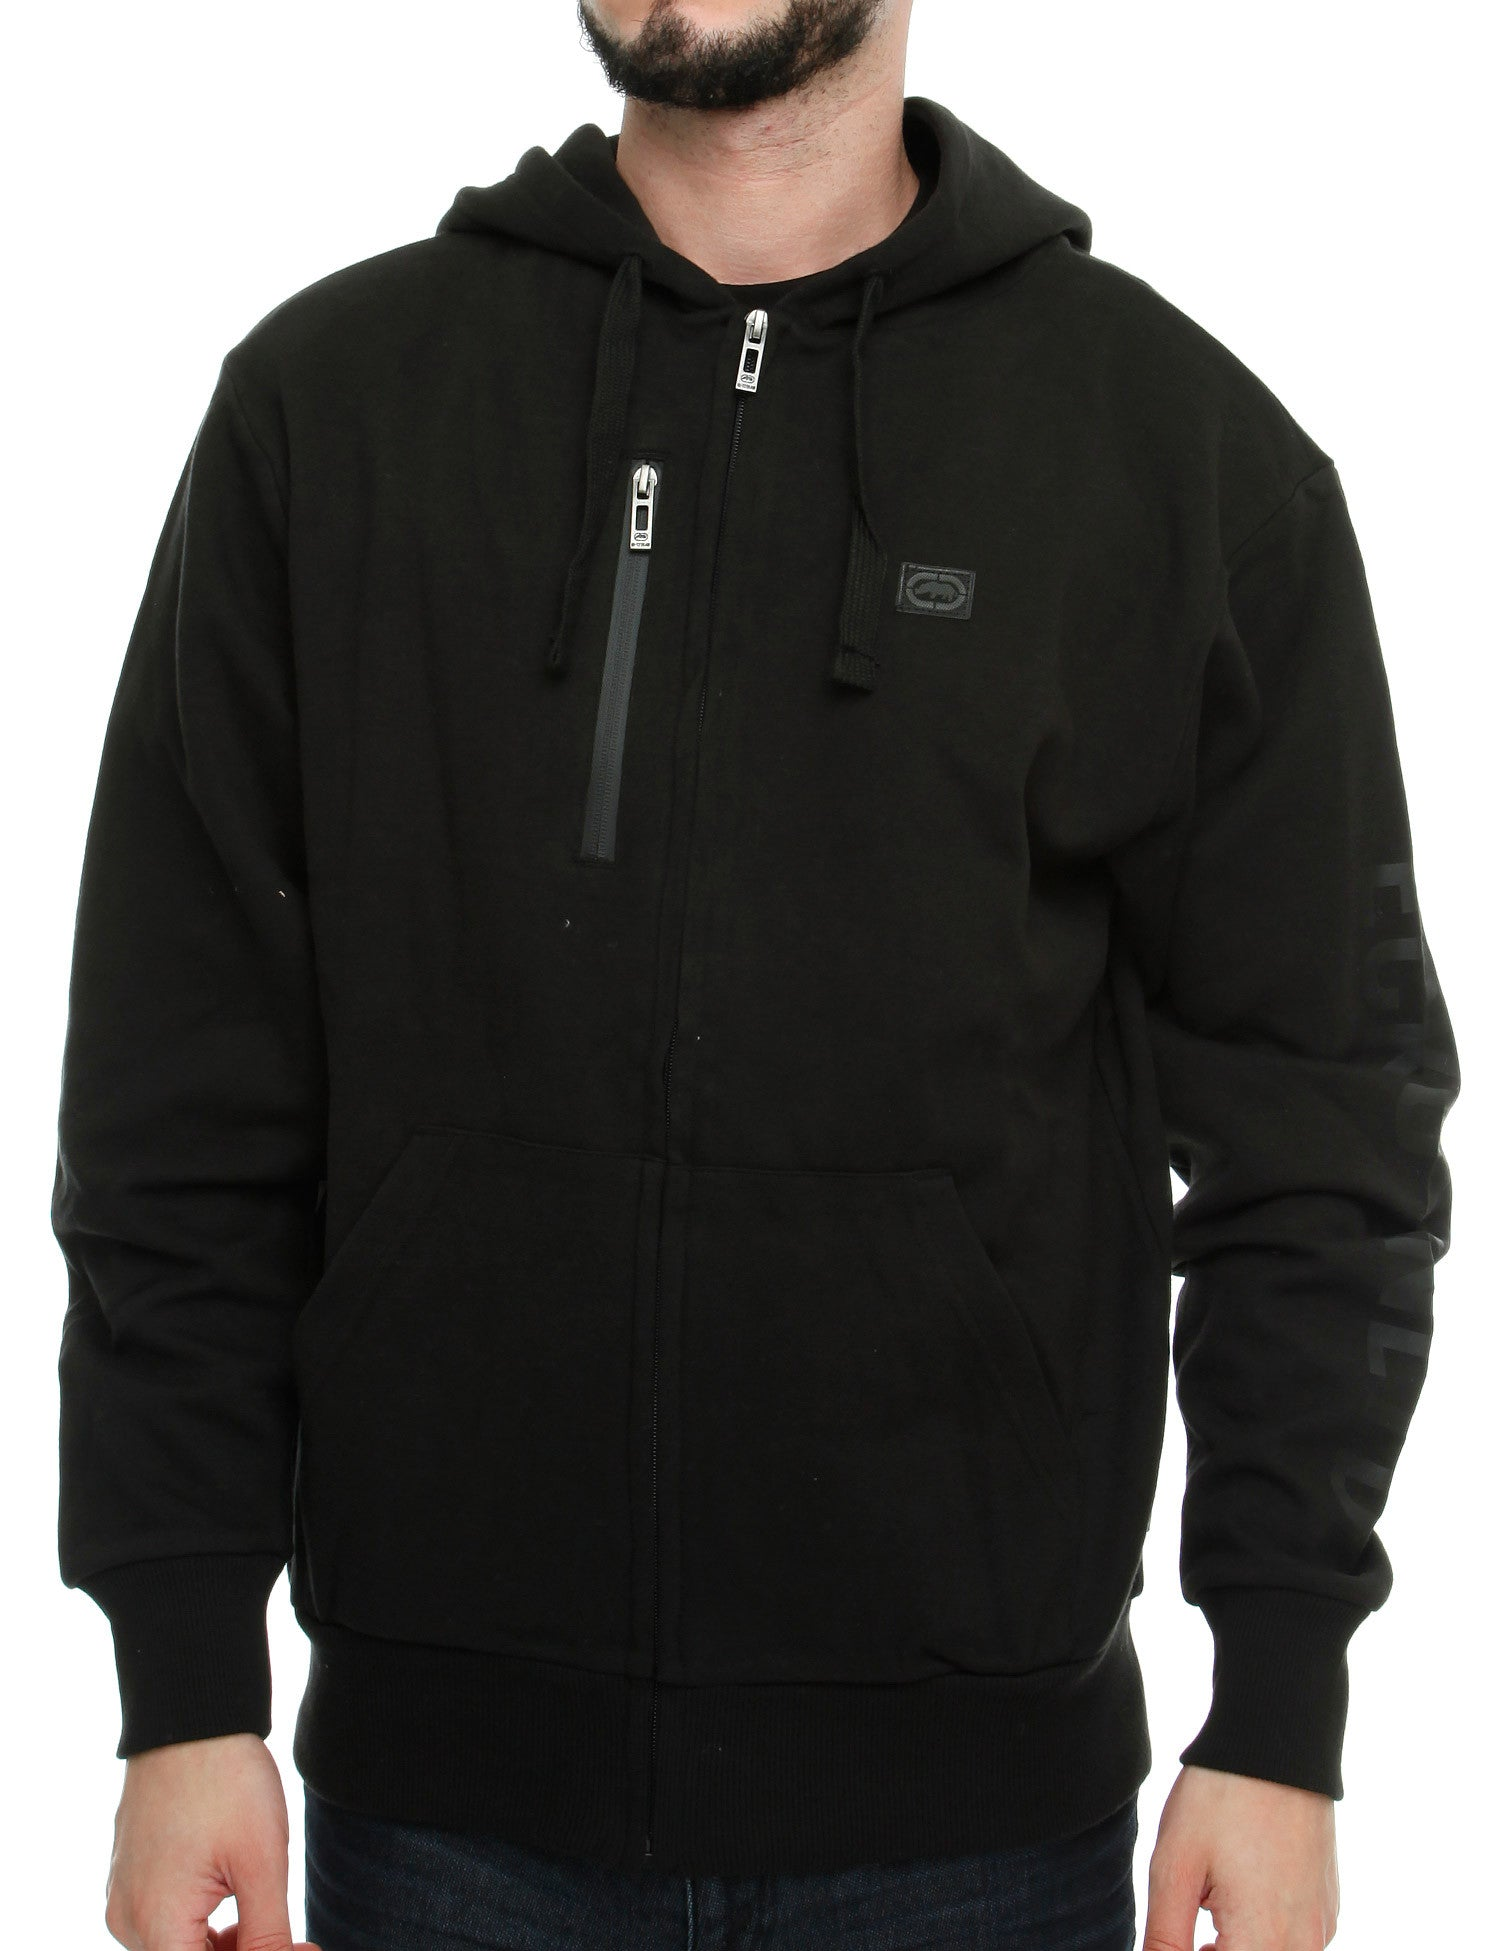 Image of Ecko Venus Zip Hoody E7N03551 Black